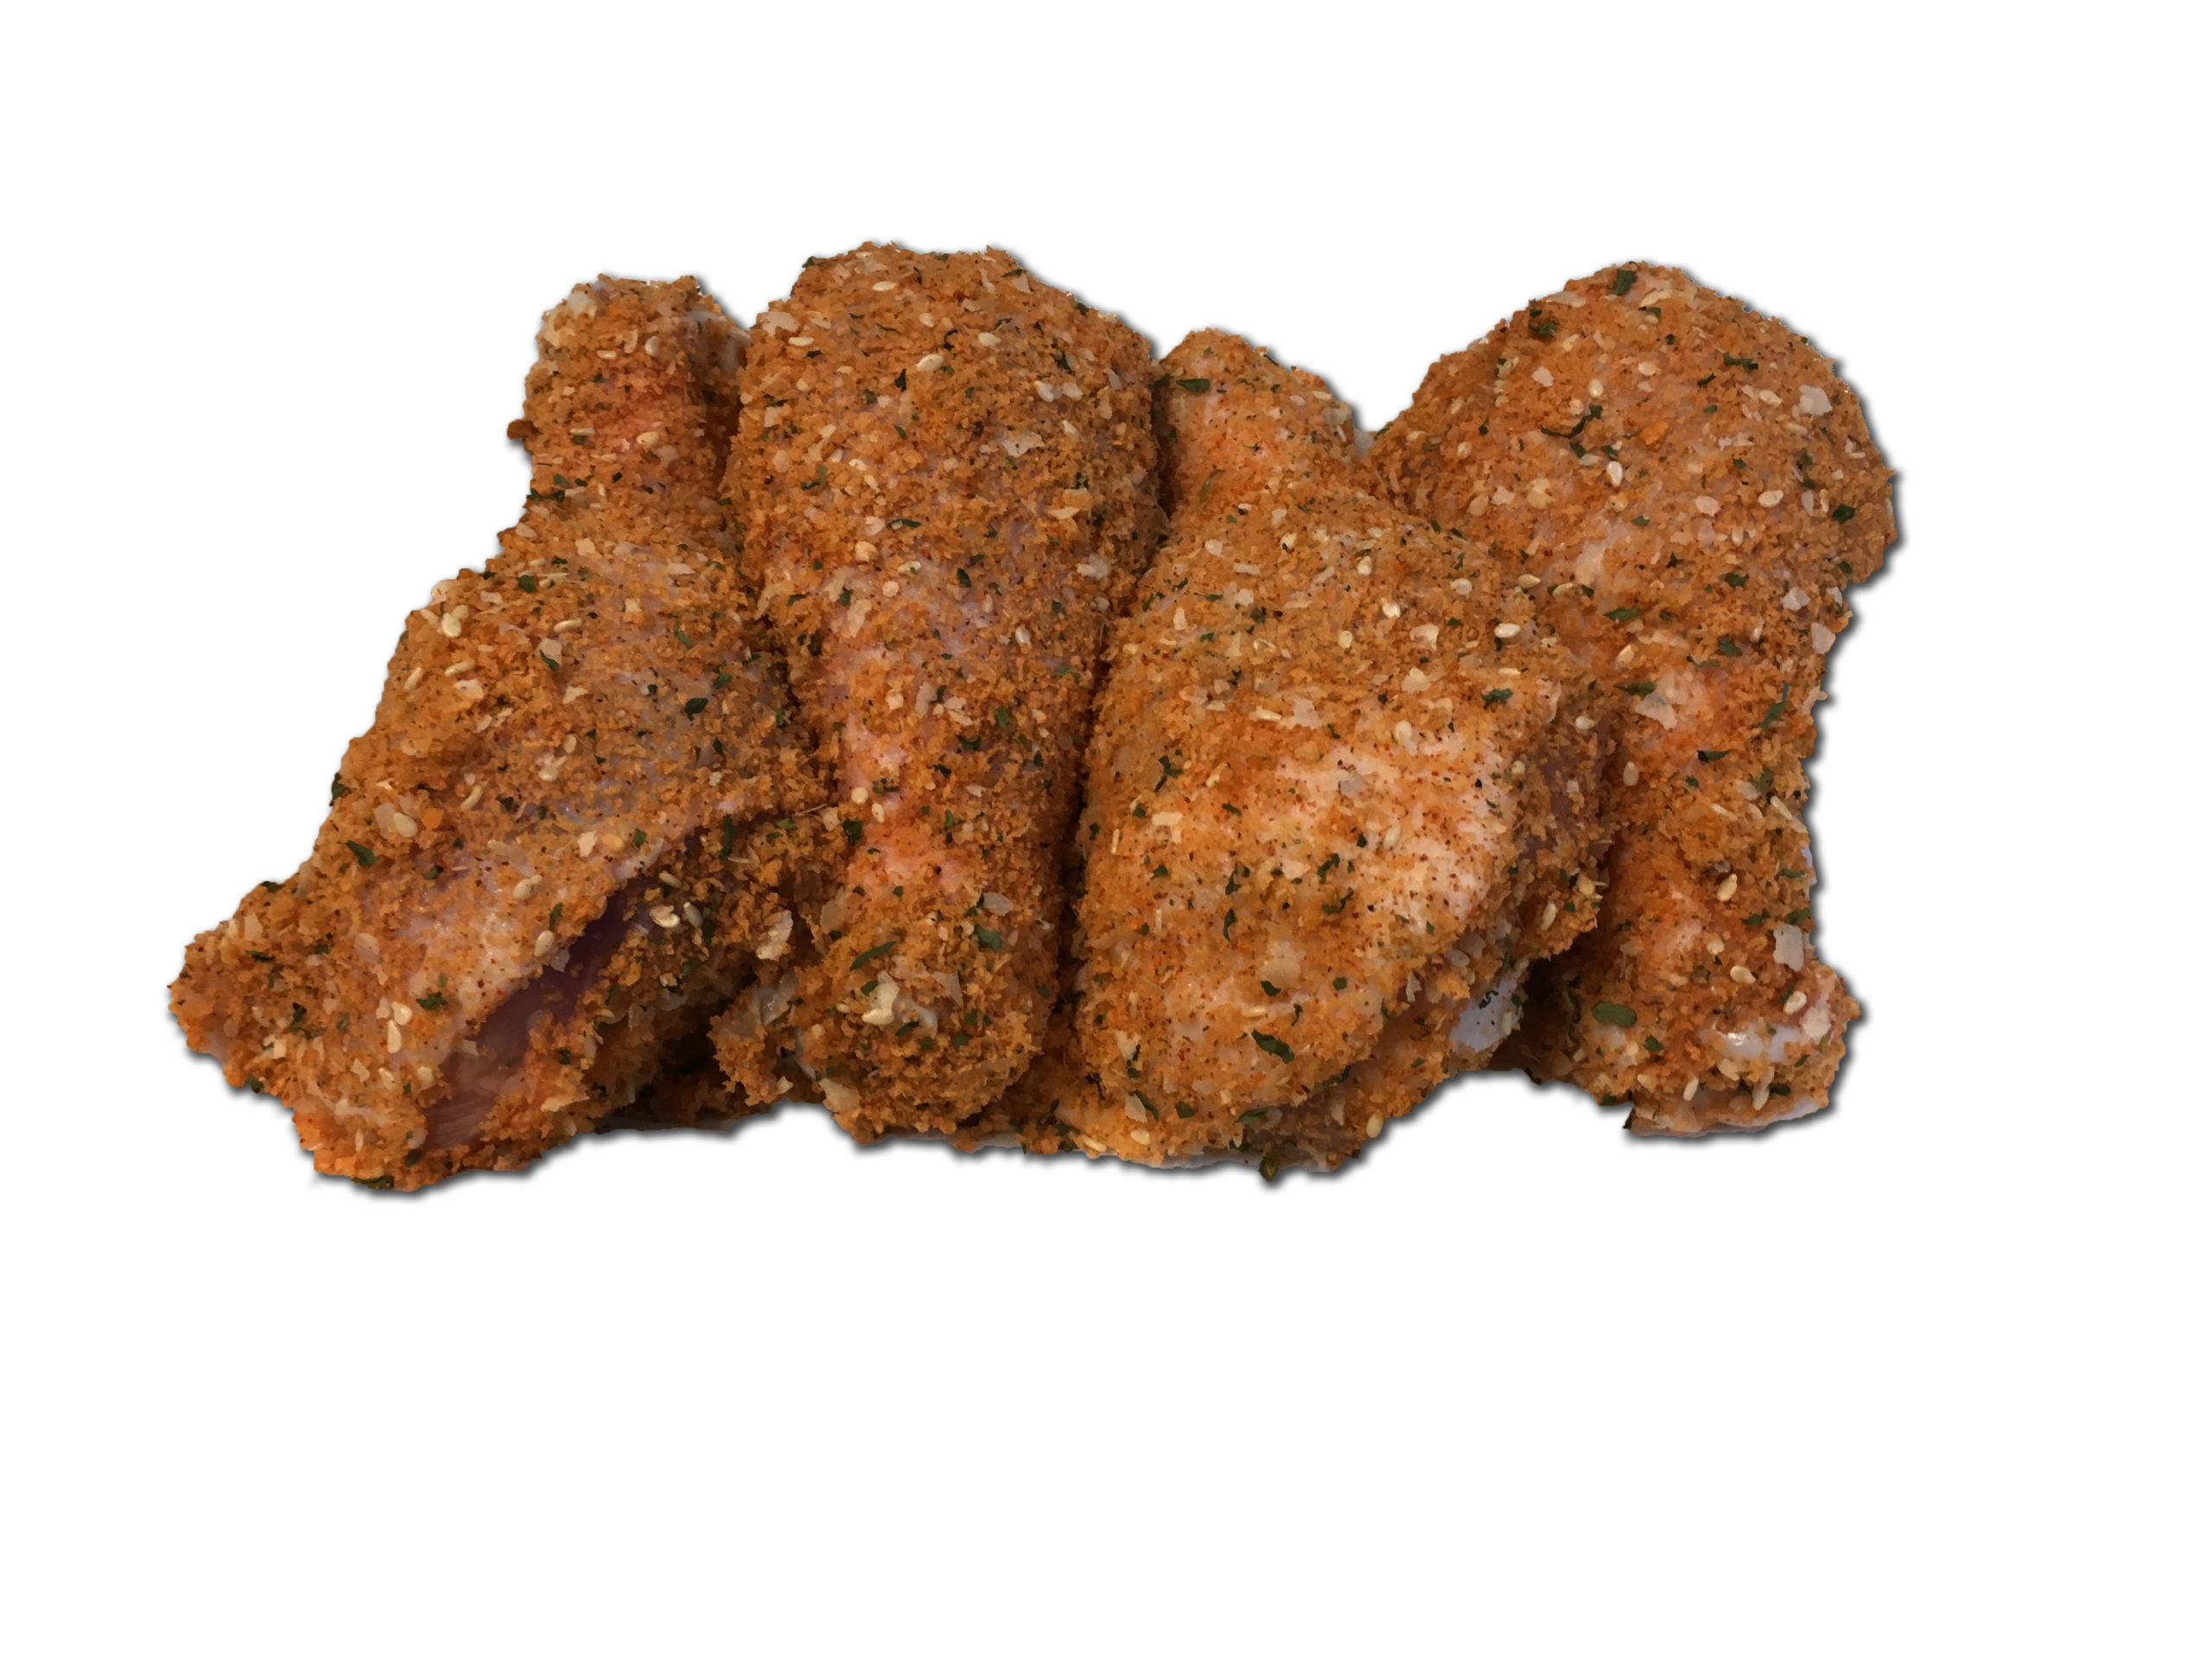 Breaded Drumsticks, Glatt kosher